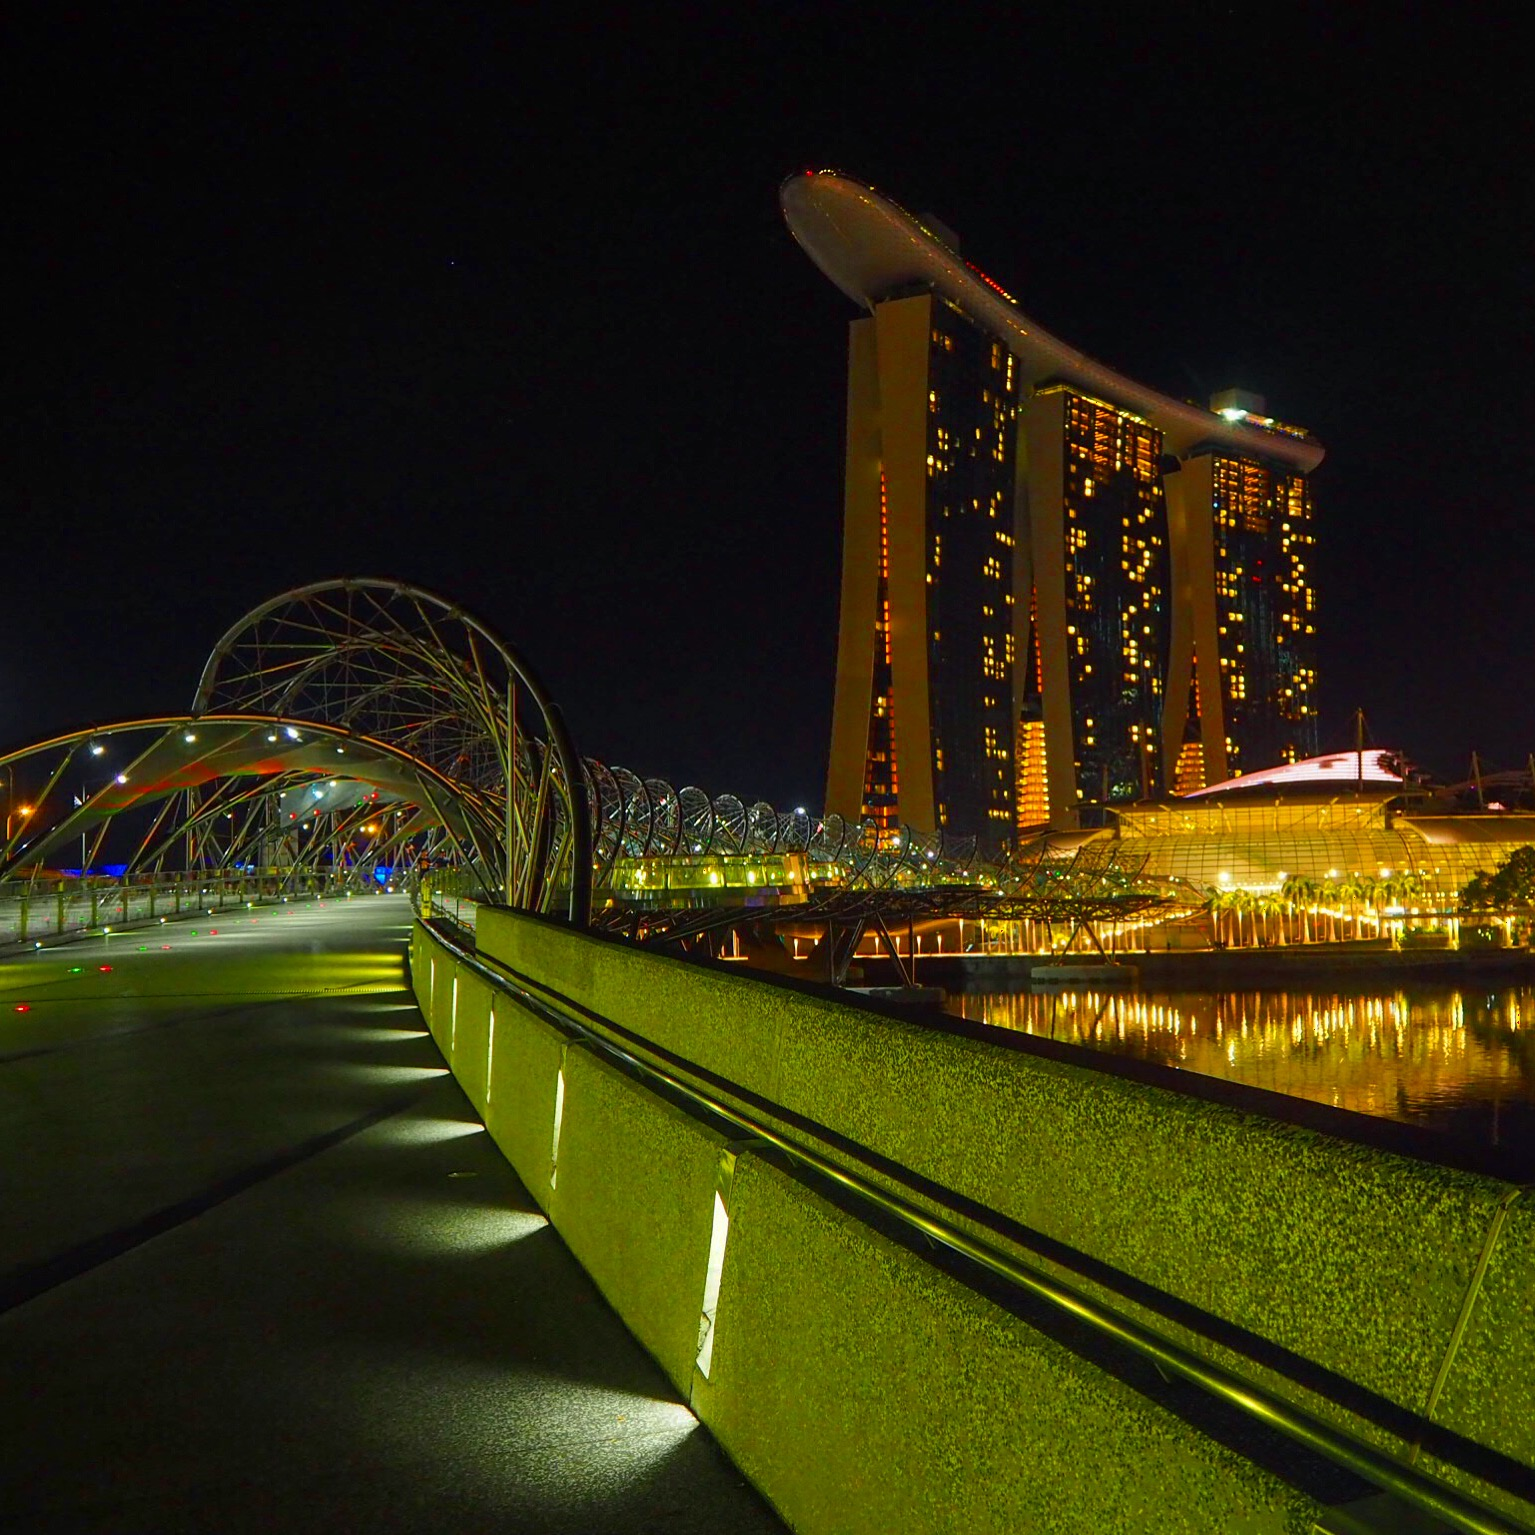 Walking across the Helix Bridge in Singapore at 1:00 a.m.